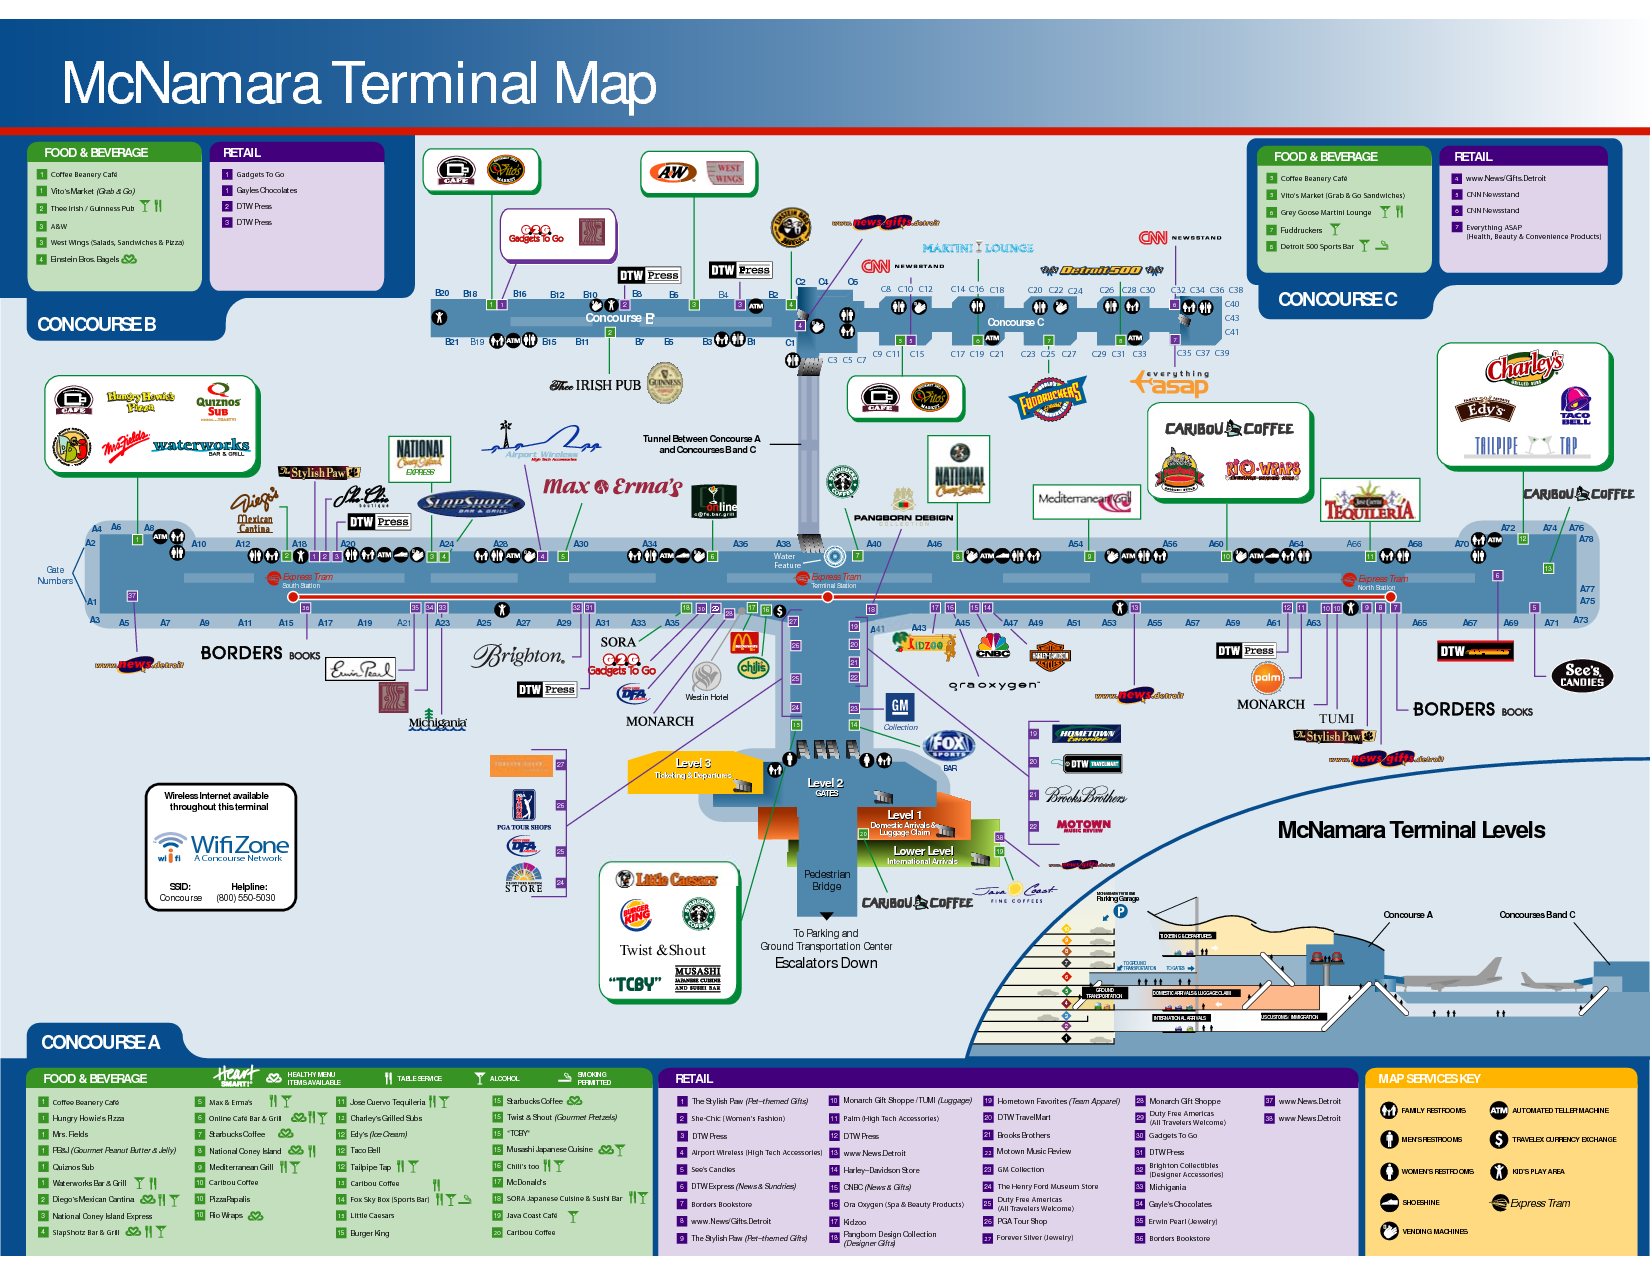 dtw north terminal map Detroit Airport Delta Gates Mcnamara Terminal Map Food Beverage dtw north terminal map